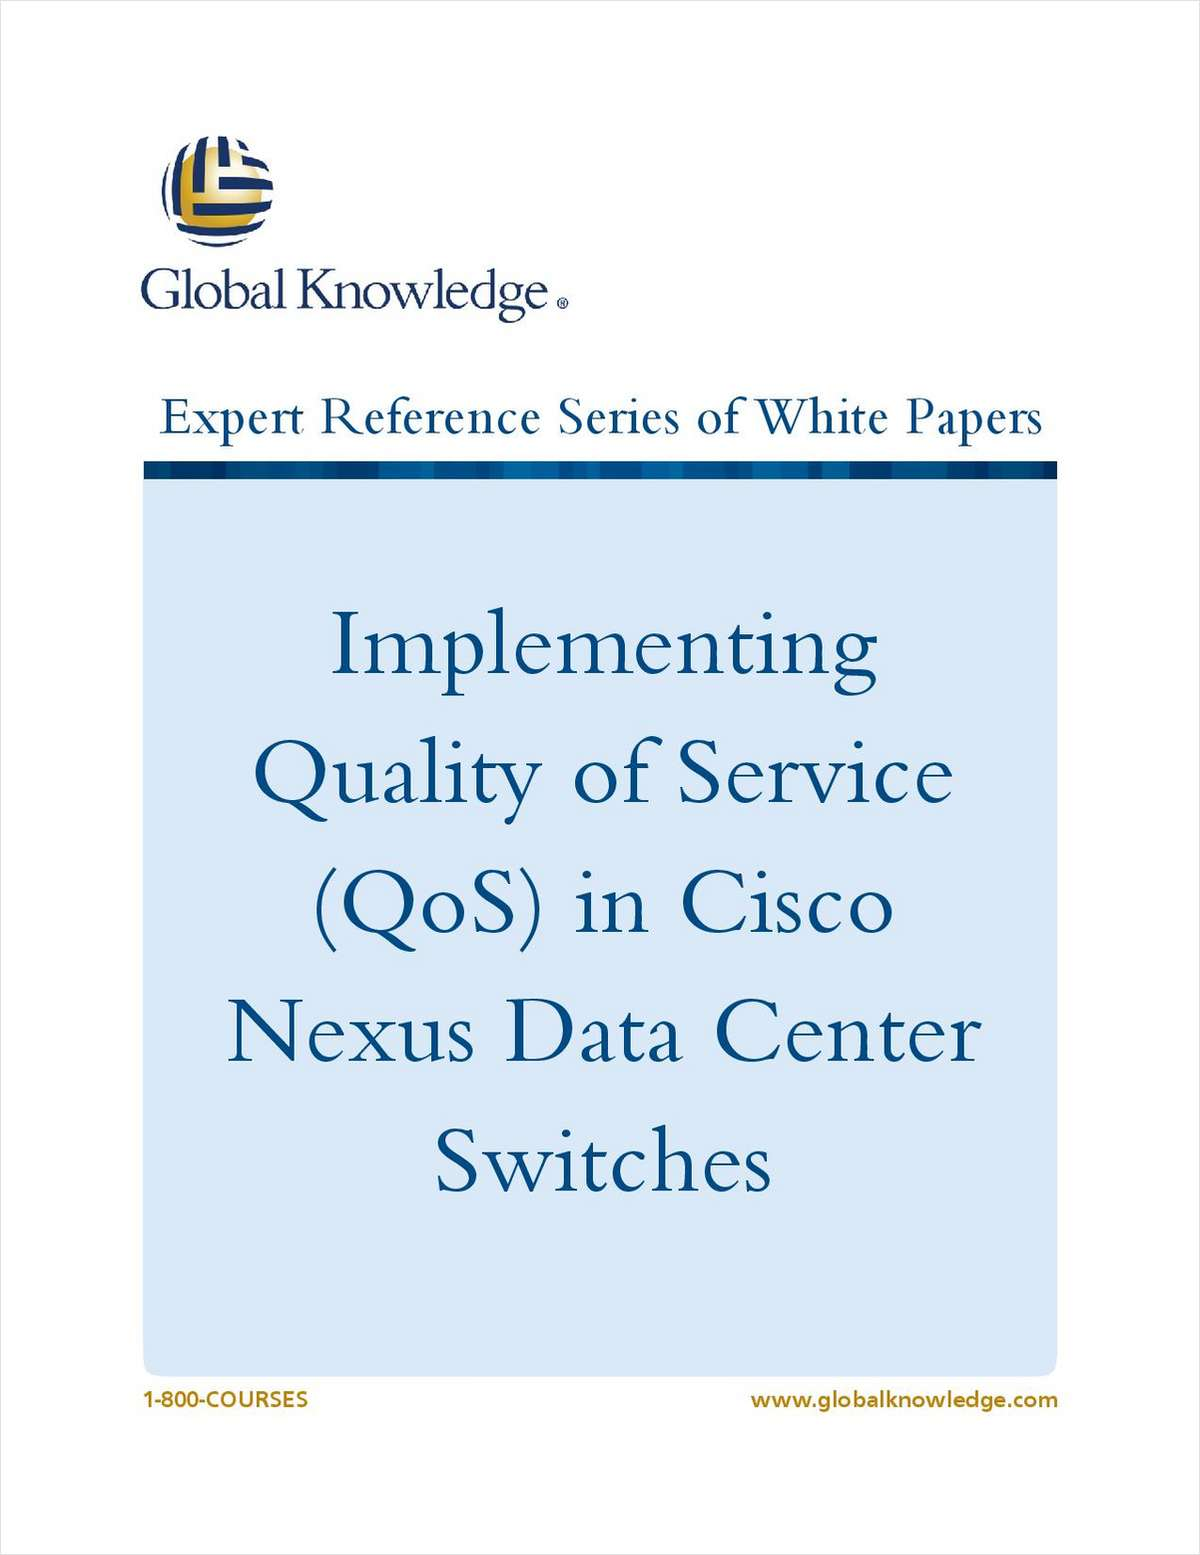 Implementing Quality of Service (QoS) in Cisco Nexus Data Center Switches